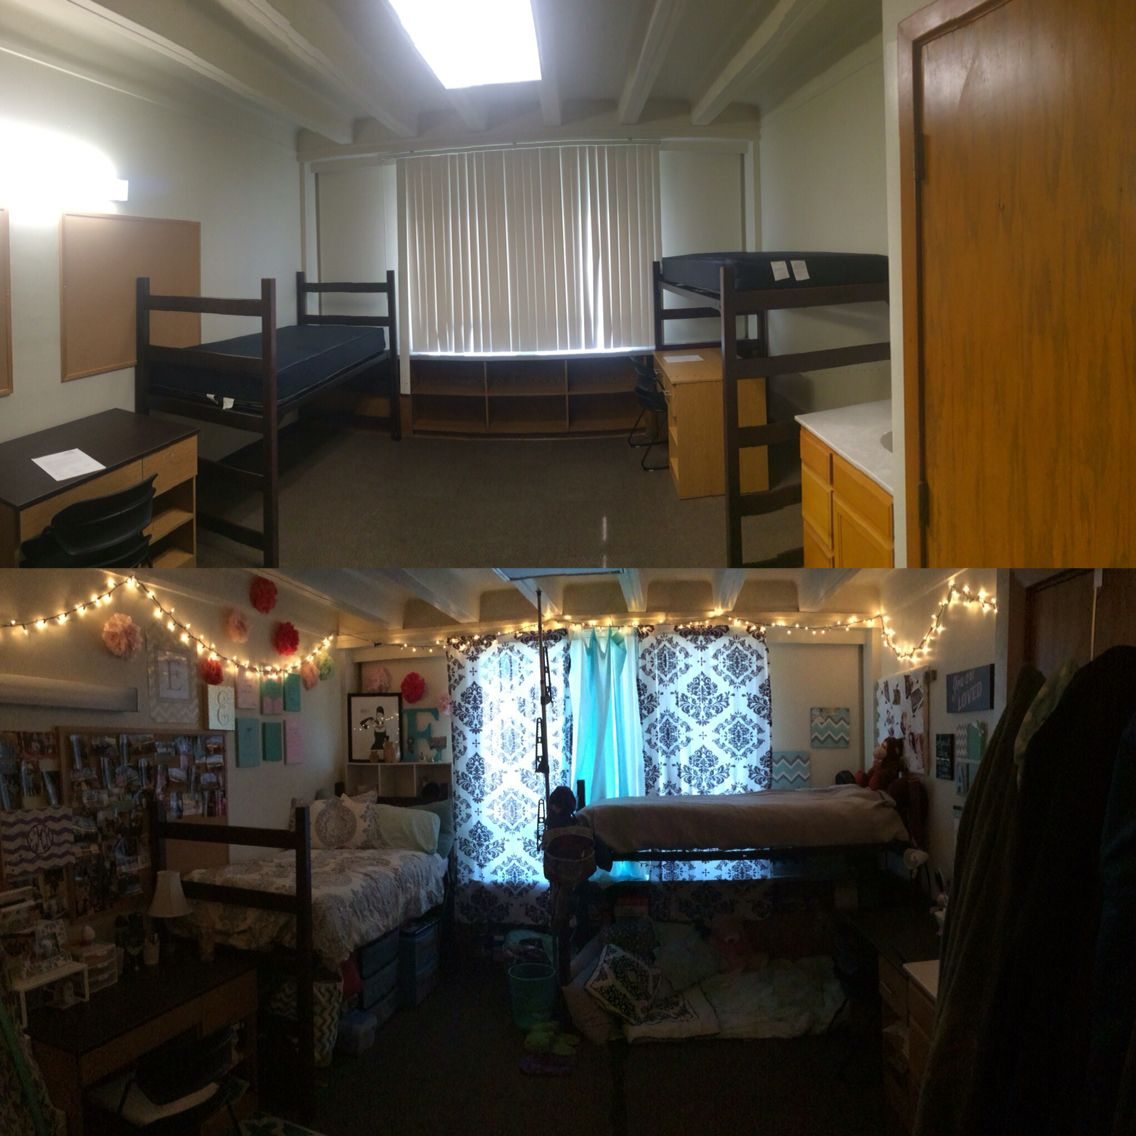 Dorm room furniture layout - Before And After Of My Dorm At Gardner Hall Abilene Christian University Pottery Barn